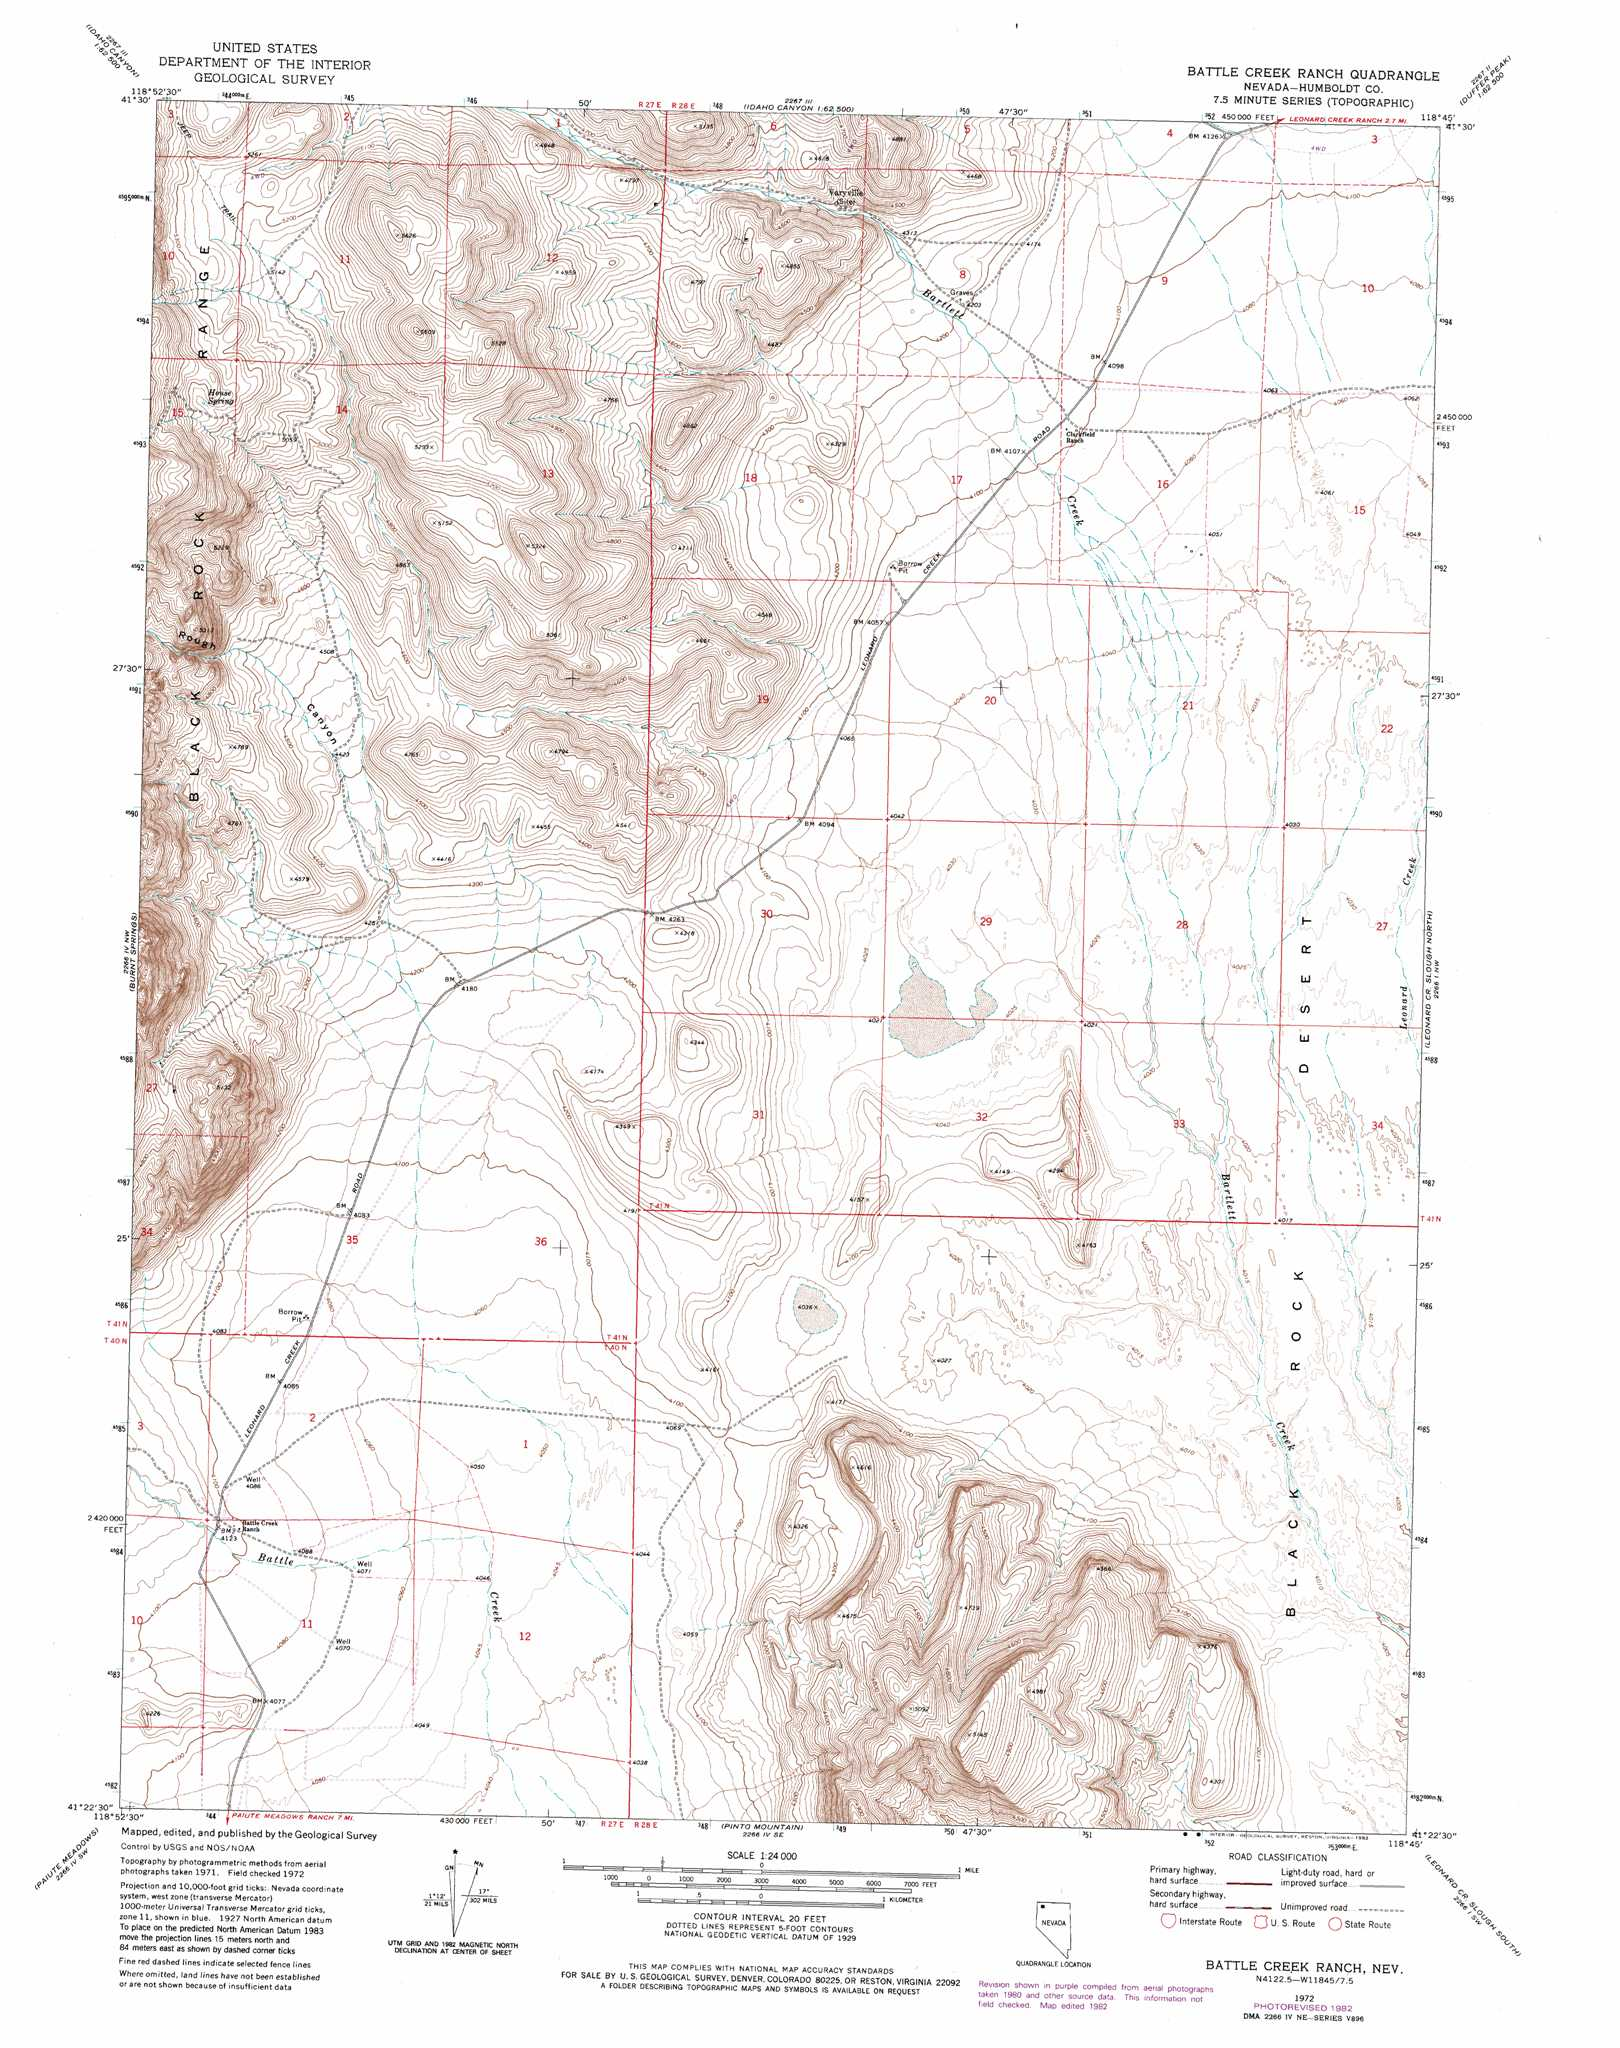 Battle Creek Ranch topographic map NV USGS Topo Quad 41118d7